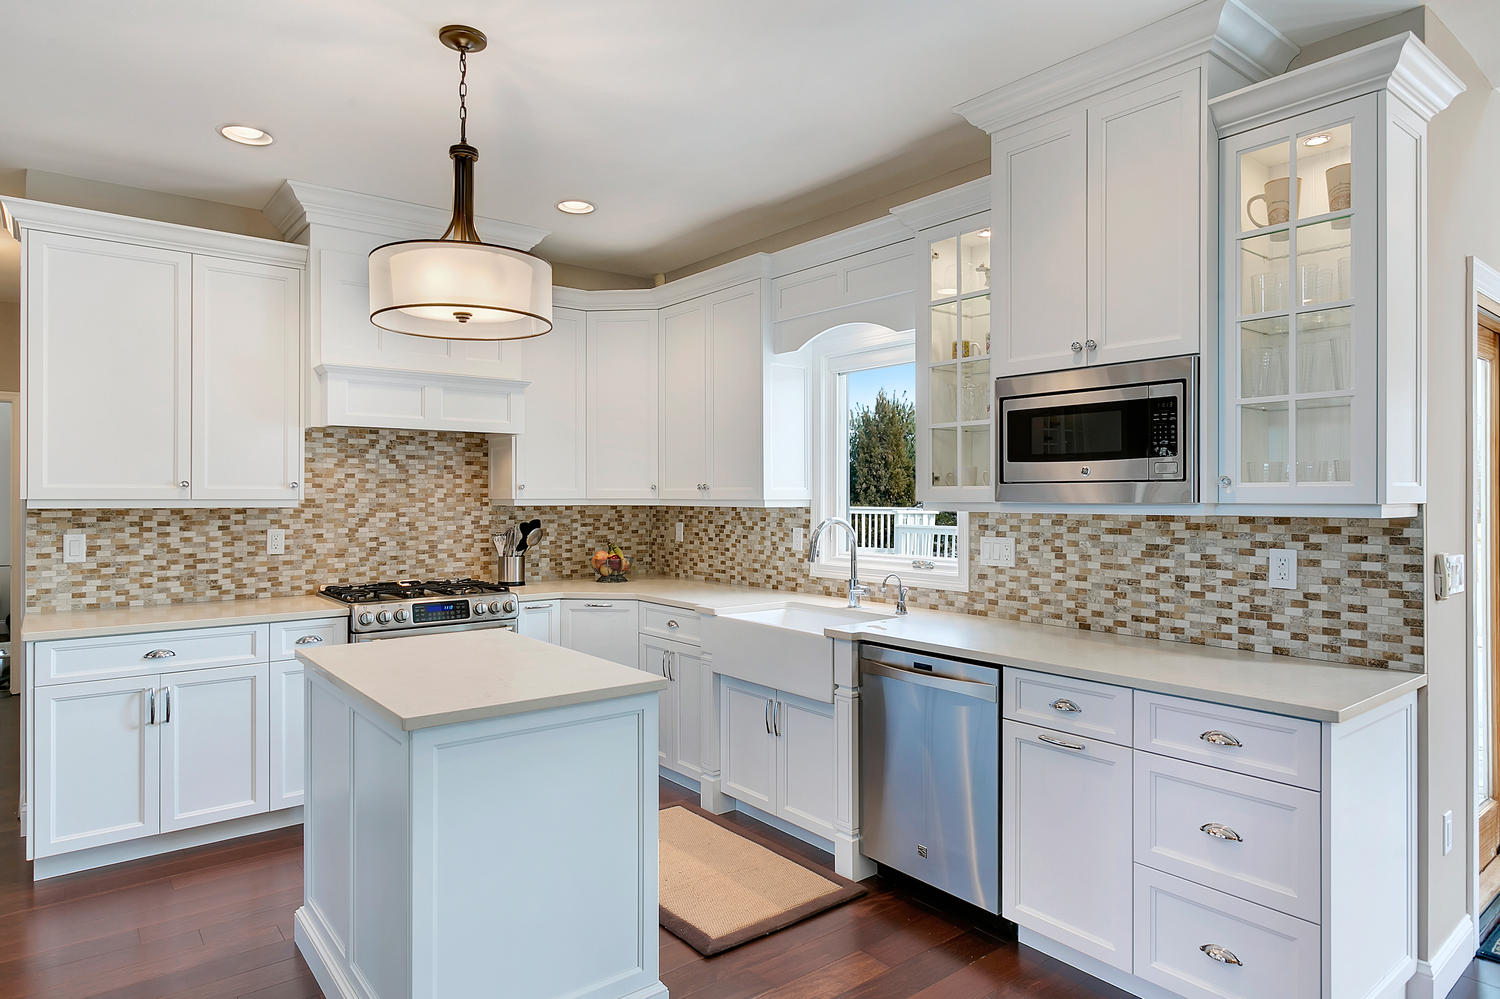 white shaker style kitchen manalapan new jersey by design line kitchens. Black Bedroom Furniture Sets. Home Design Ideas